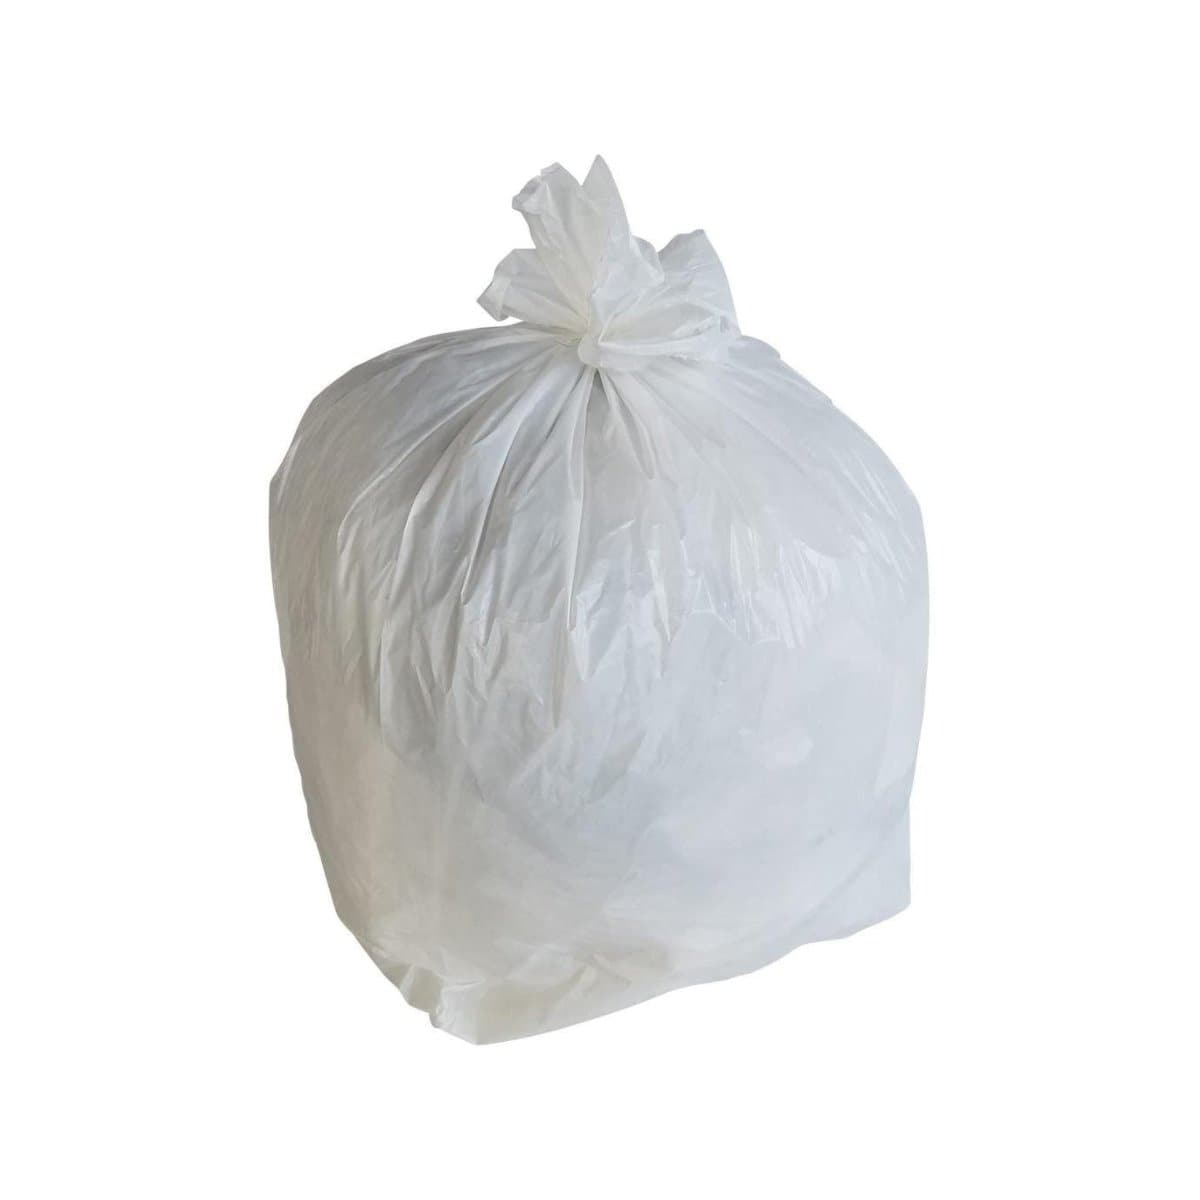 Club Plastic Garbage Bags, 10 Gallons, 30/pack, White